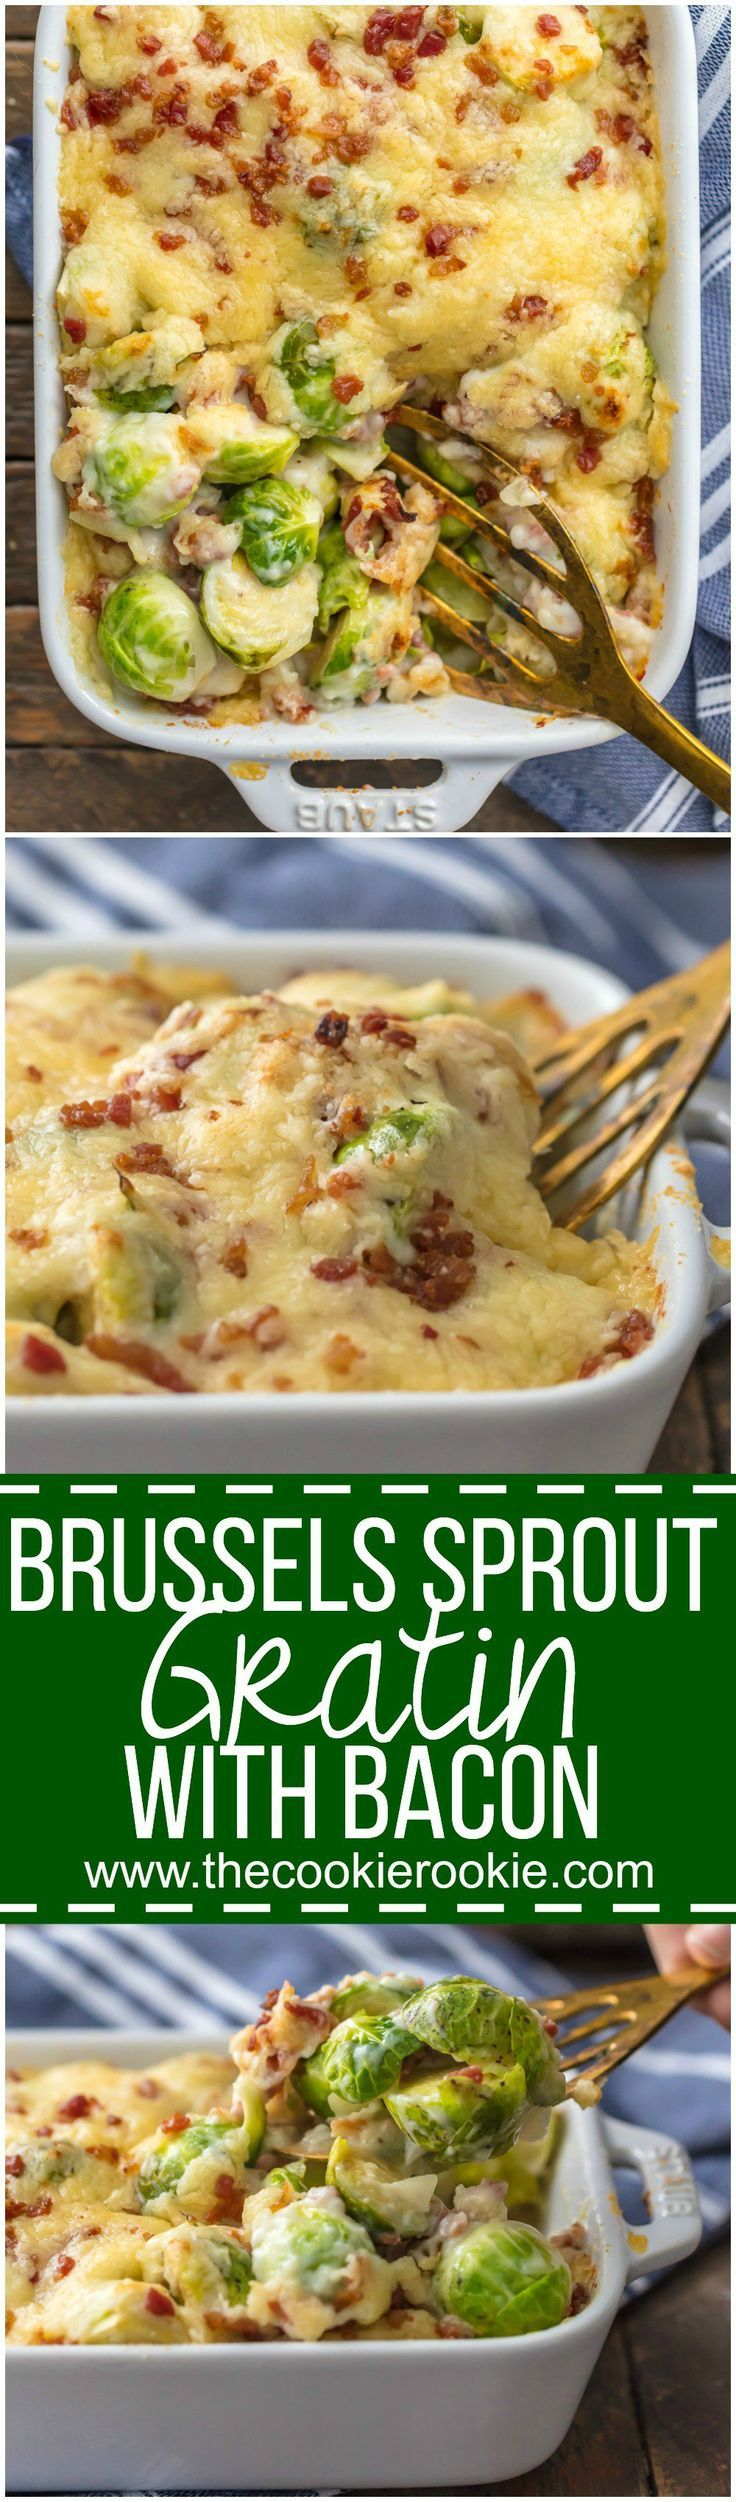 BRUSSELS SPROUT GRATIN with BACON is the ultimate holiday side dish! Who can resist brussels sprouts when sprinkled with bacon and SO MUCH CHEESE!